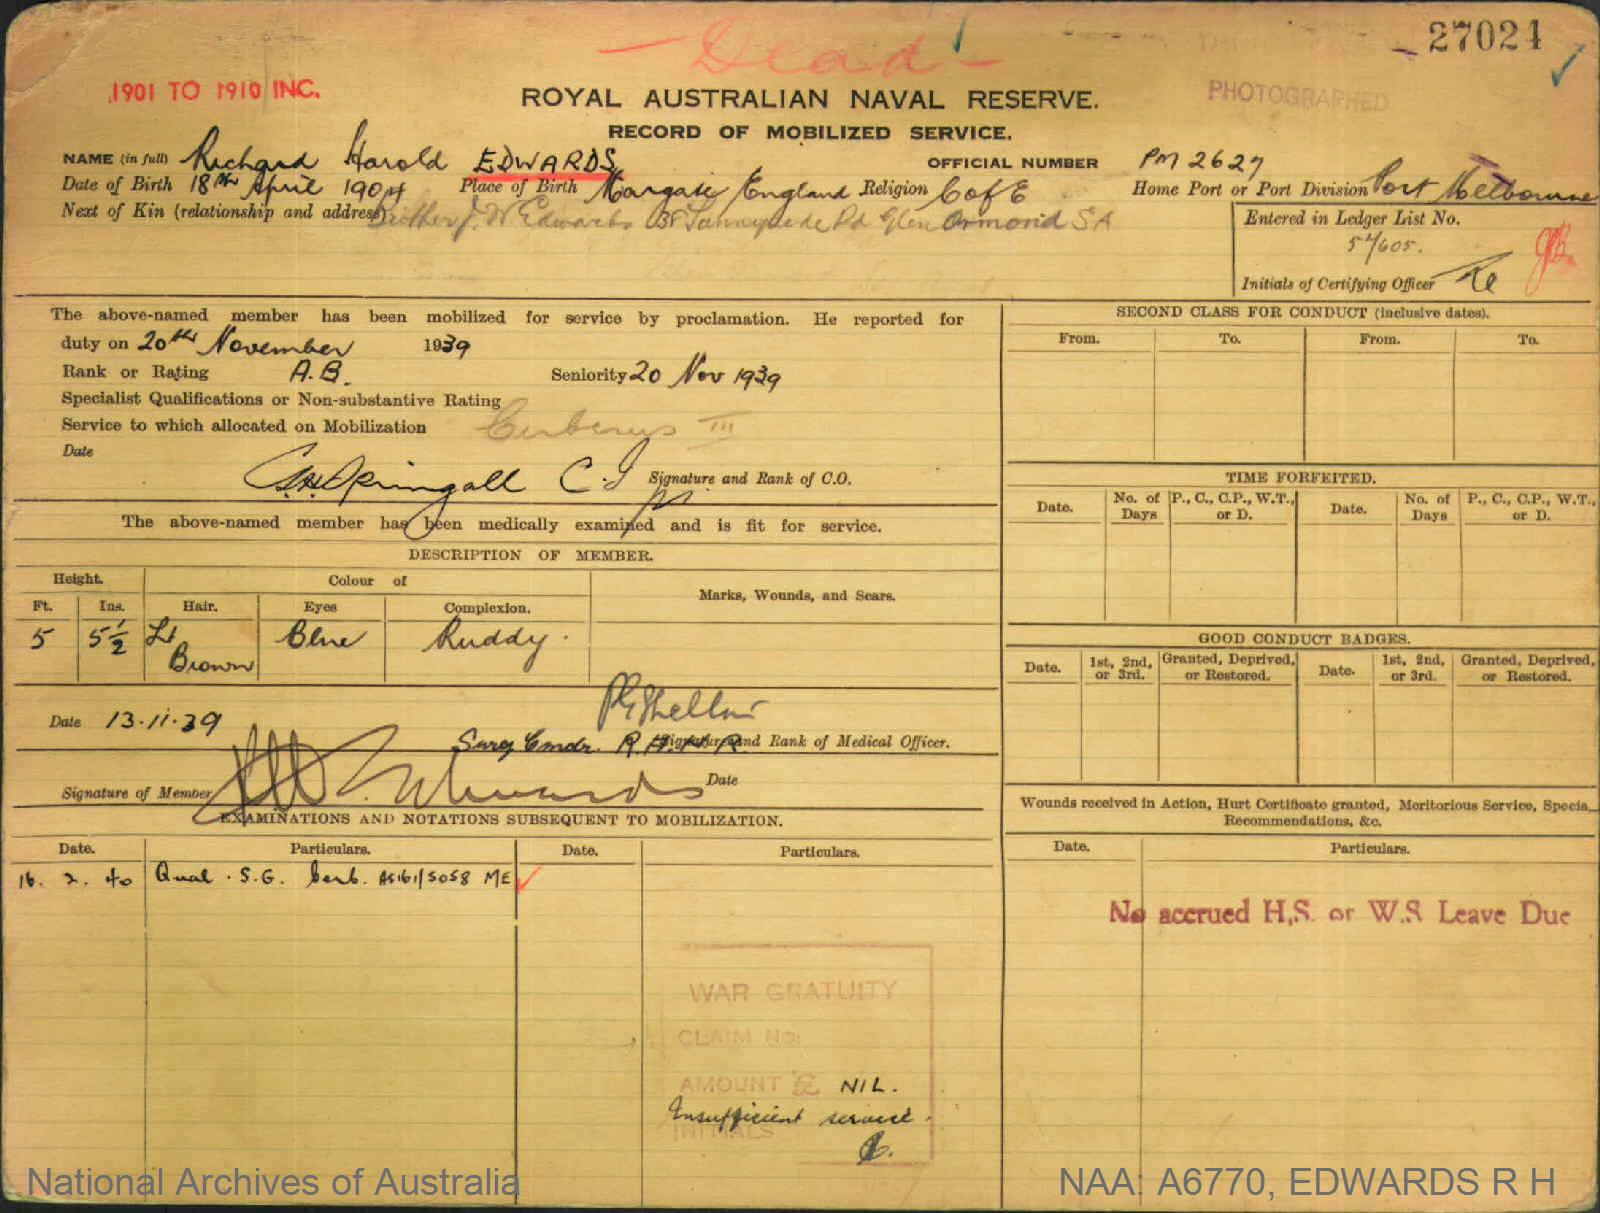 EDWARDS RICHARD HAROLD : Service Number - PM2627 : Date of birth - 18 Apr 1904 : Place of birth - MARGATE ENGLAND : Place of enlistment - PORT MELBOURNE VIC : Next of Kin - EDWARDS J